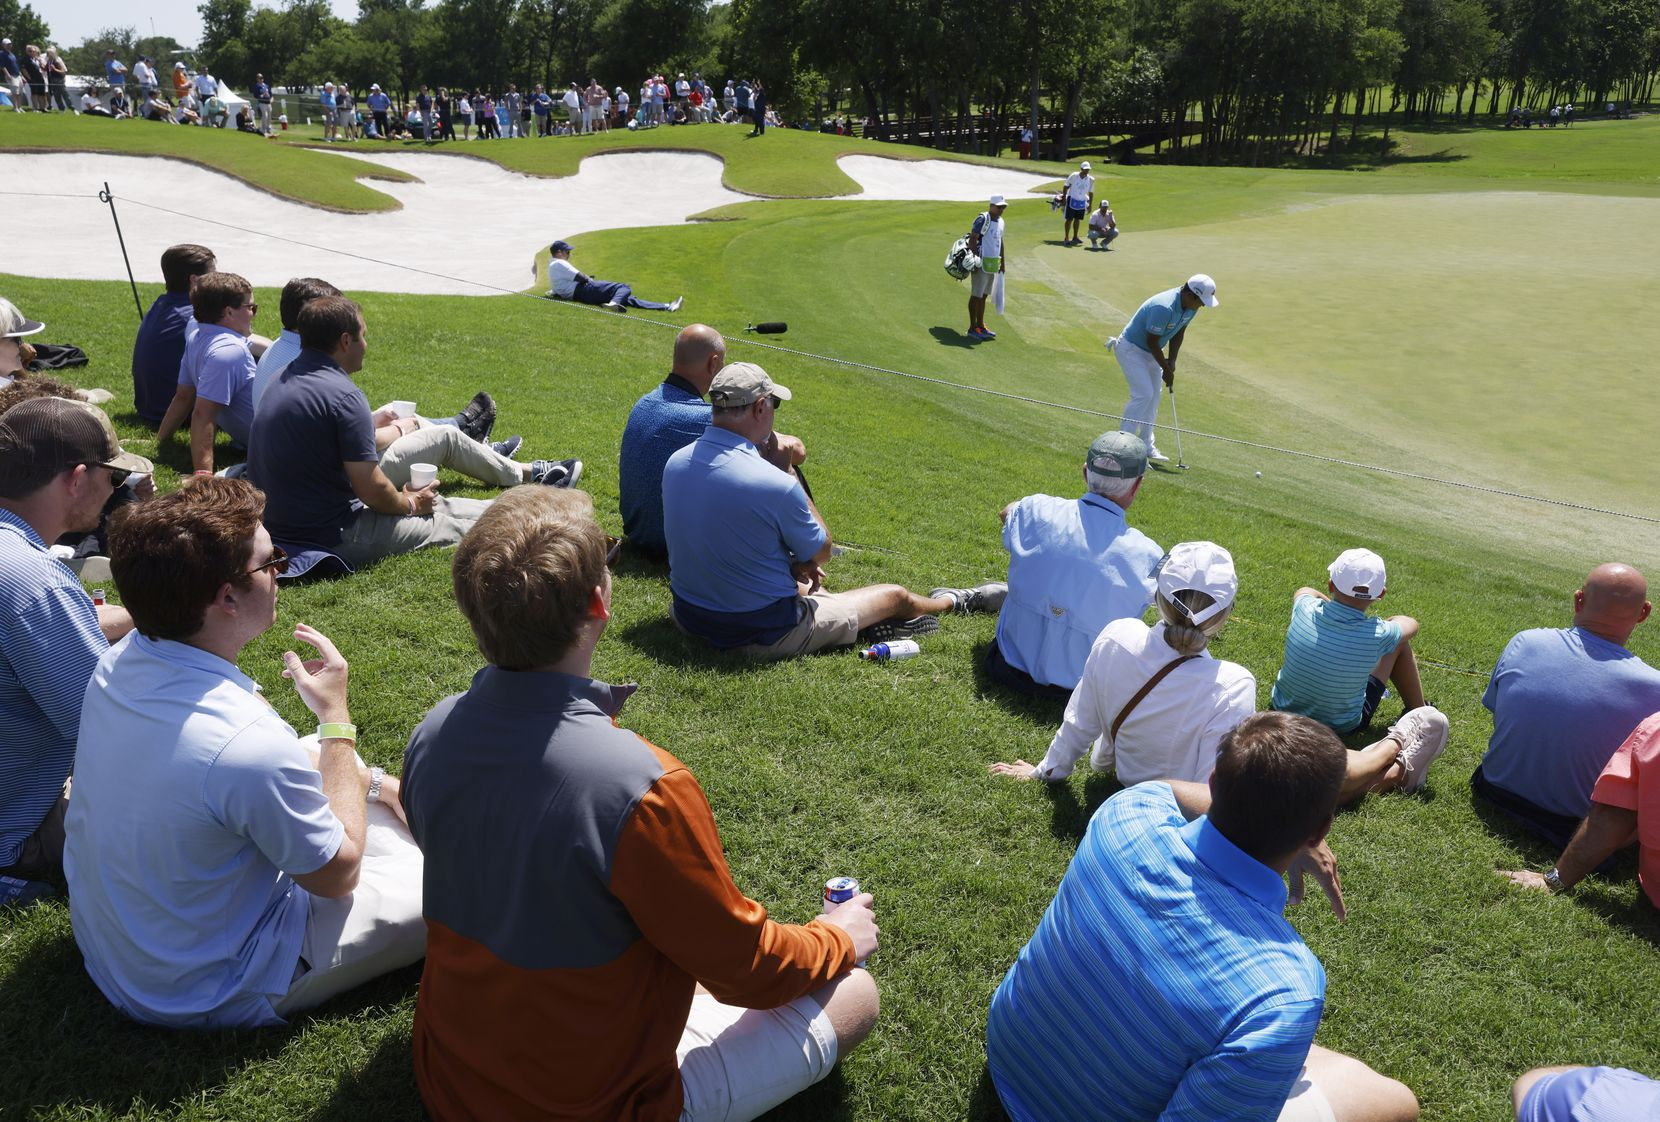 Fans watched as eventual winner K.H. Lee hit a putt on the 12th hole during Round 1 of the AT&T Byron Nelson at TPC Craig Ranch on May 13. The PGA's limits on attendance allowed fans a more intimate view of the players.